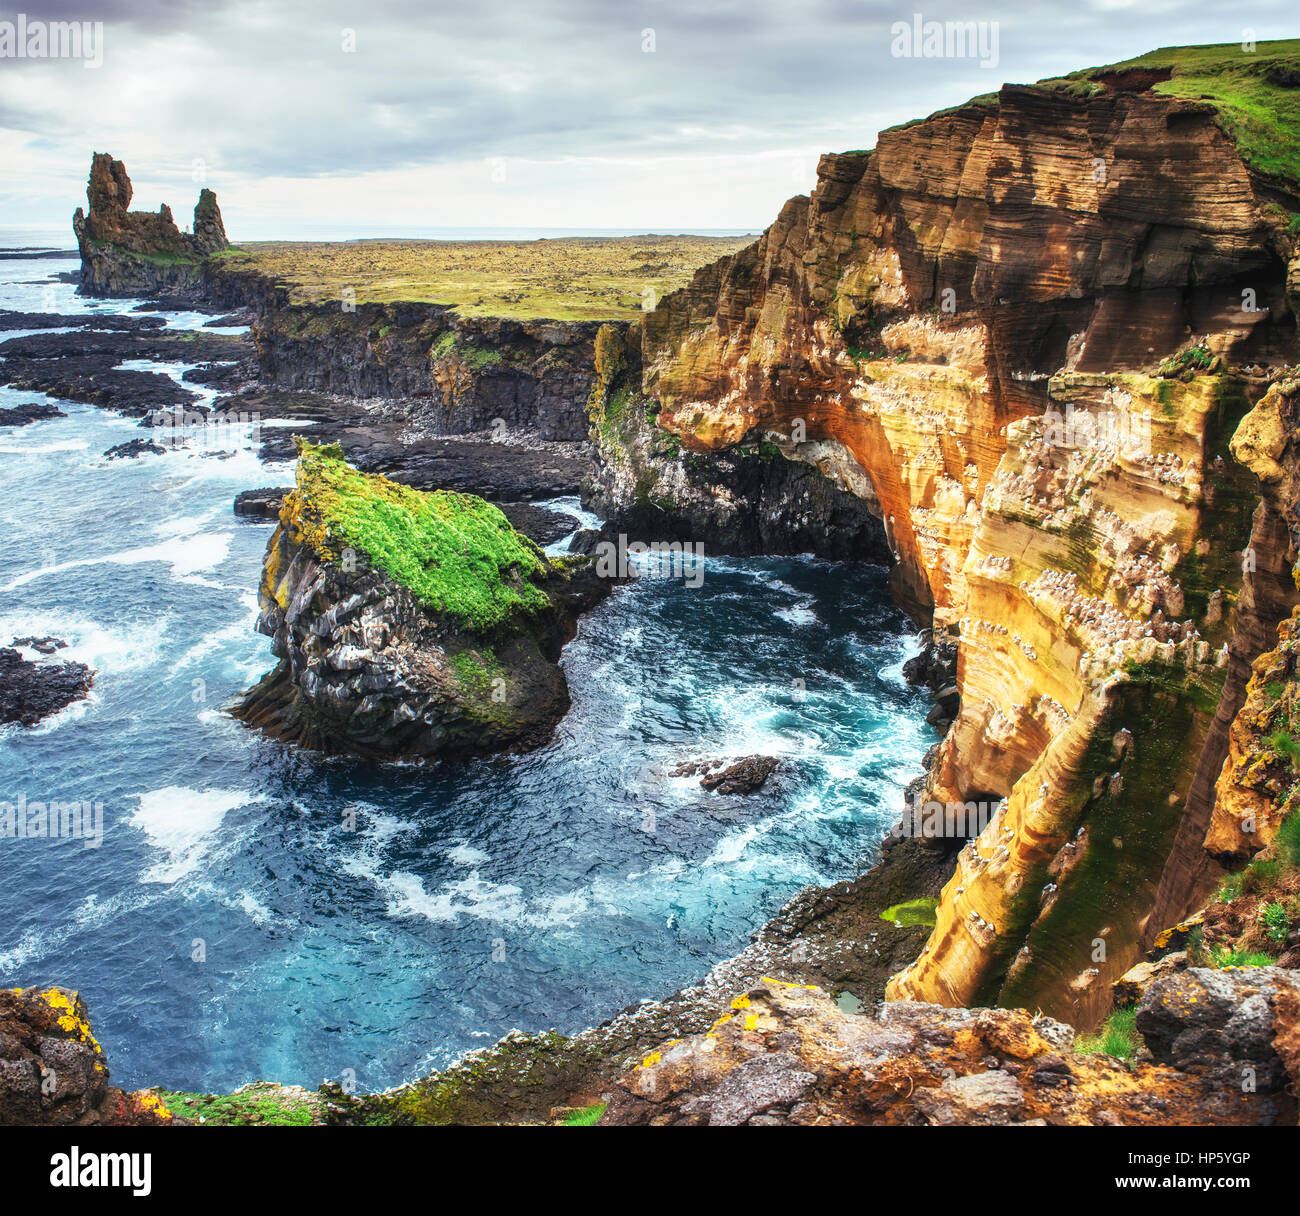 Scenic view of coastline at Arnarstapi Iceland - Stock Image